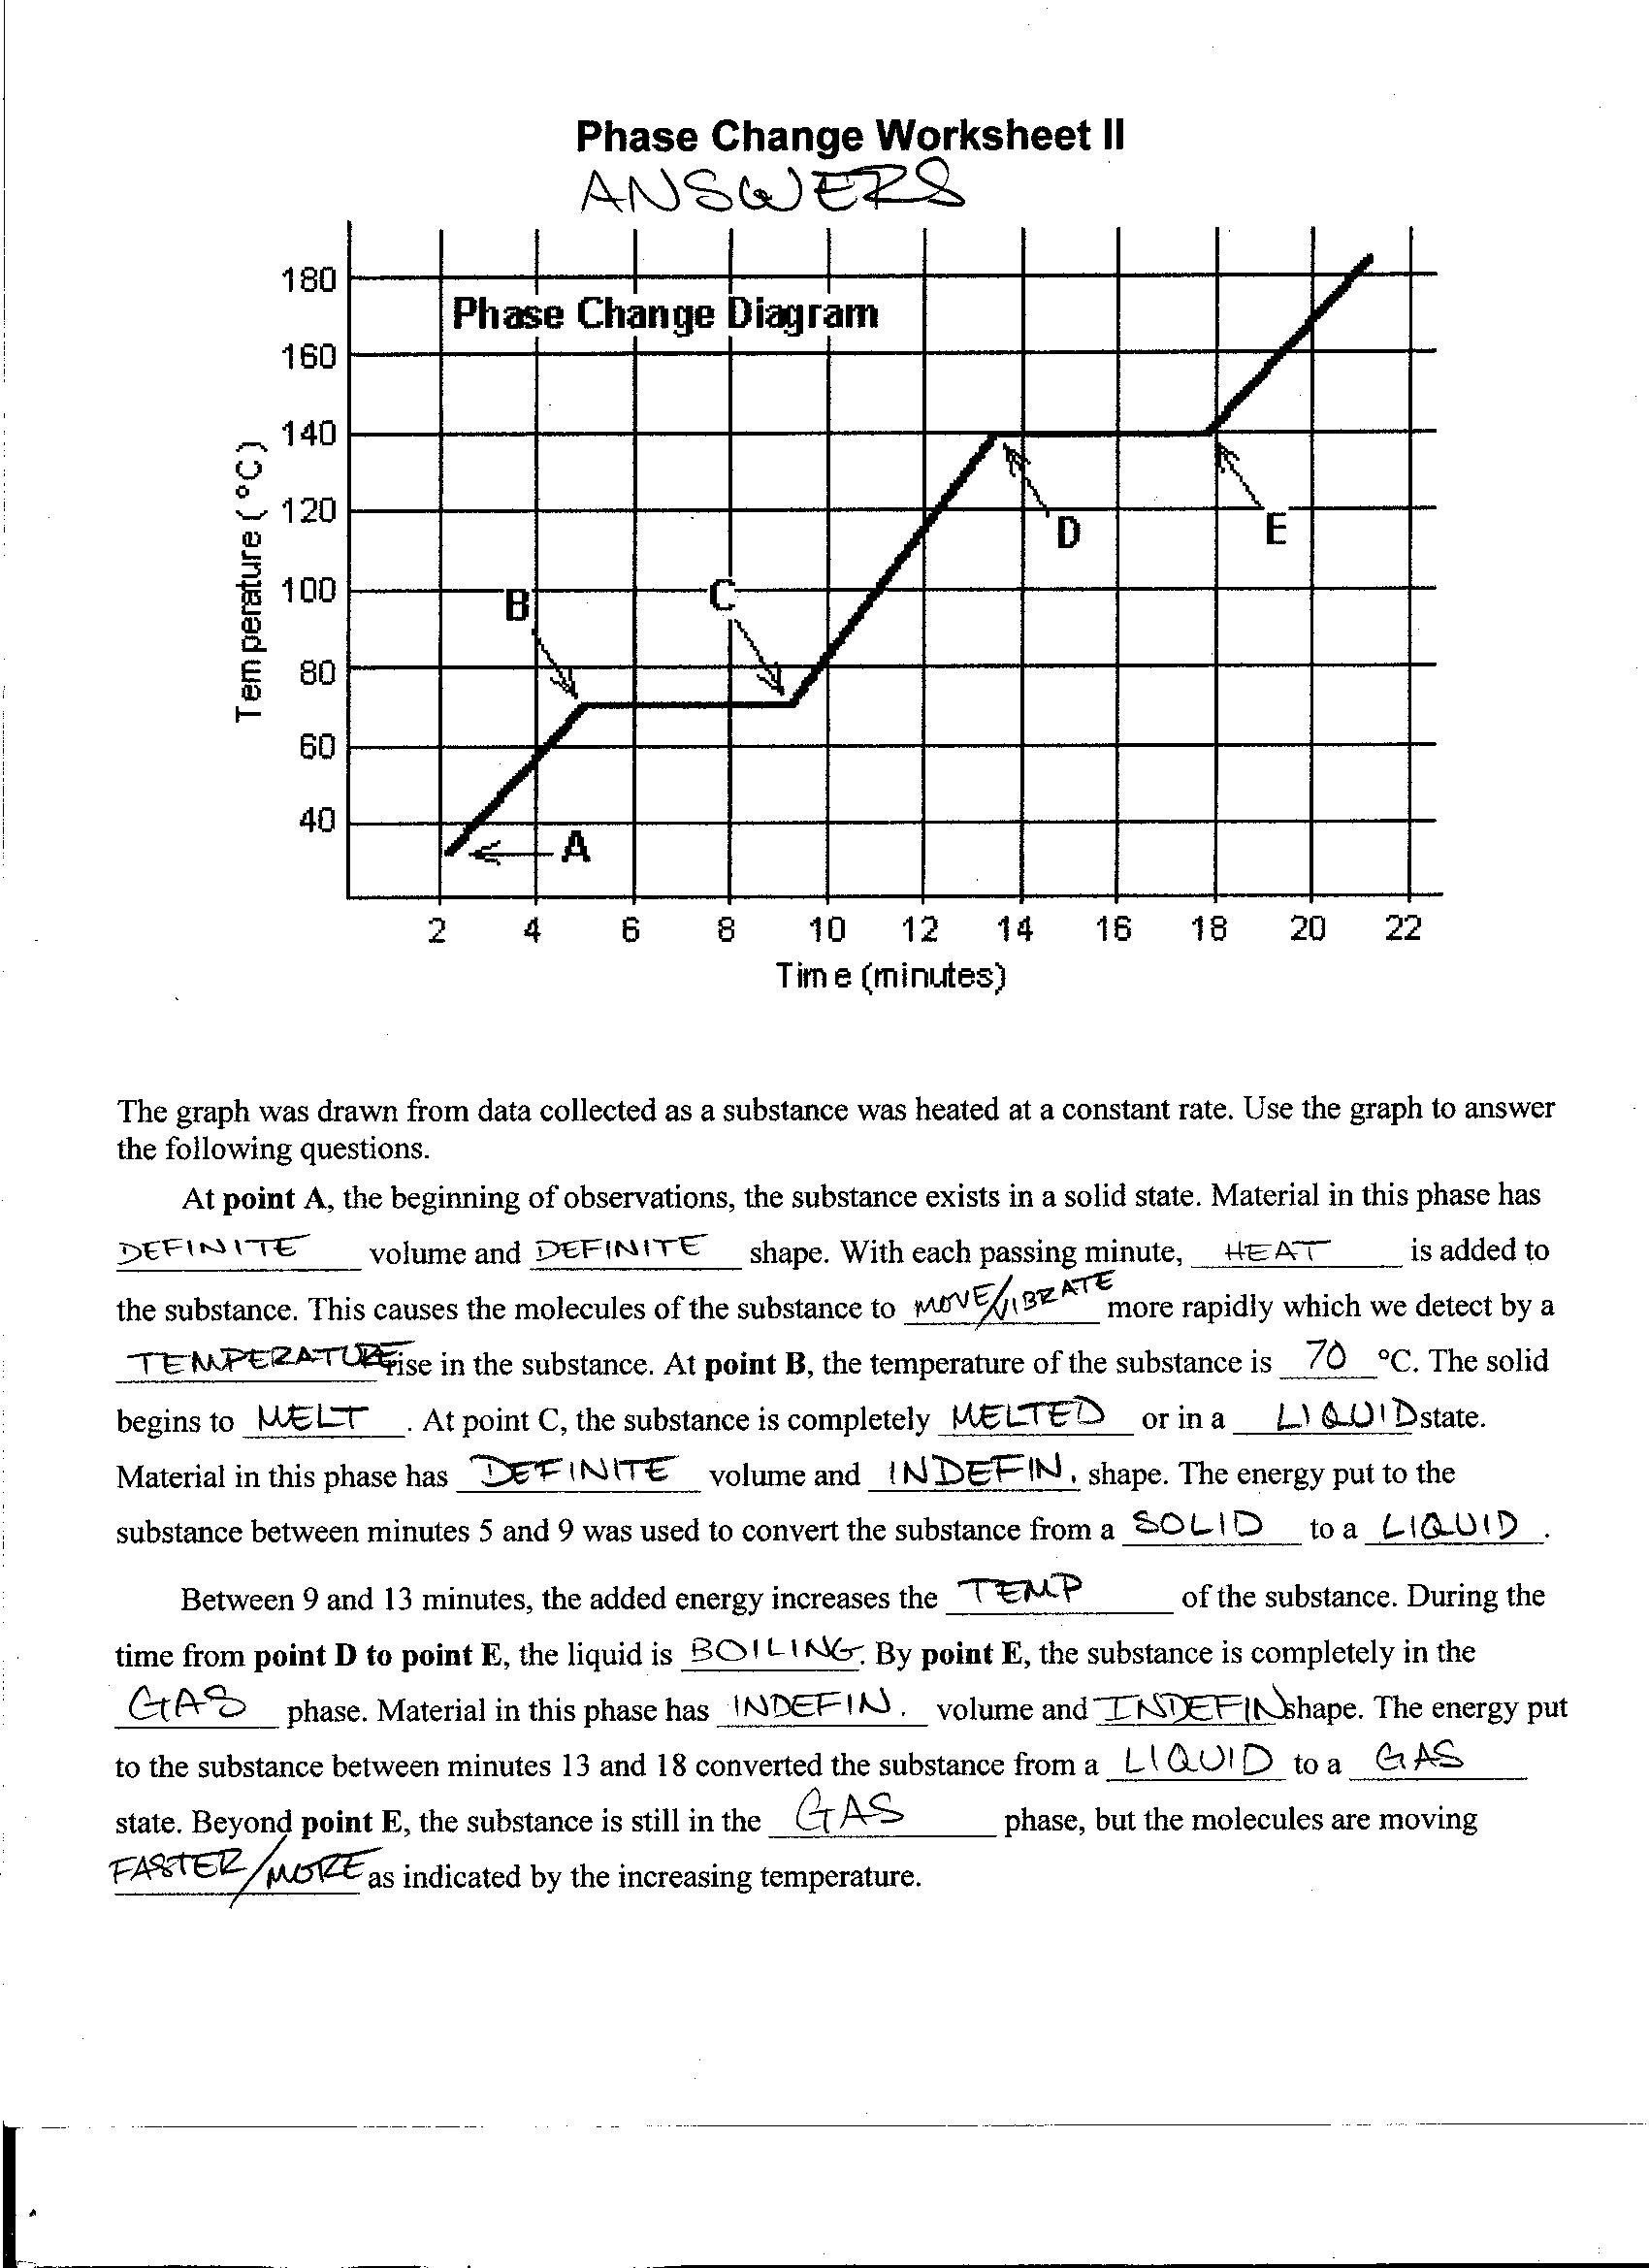 Phase Change Diagram Worksheet – Phase Diagram Worksheet